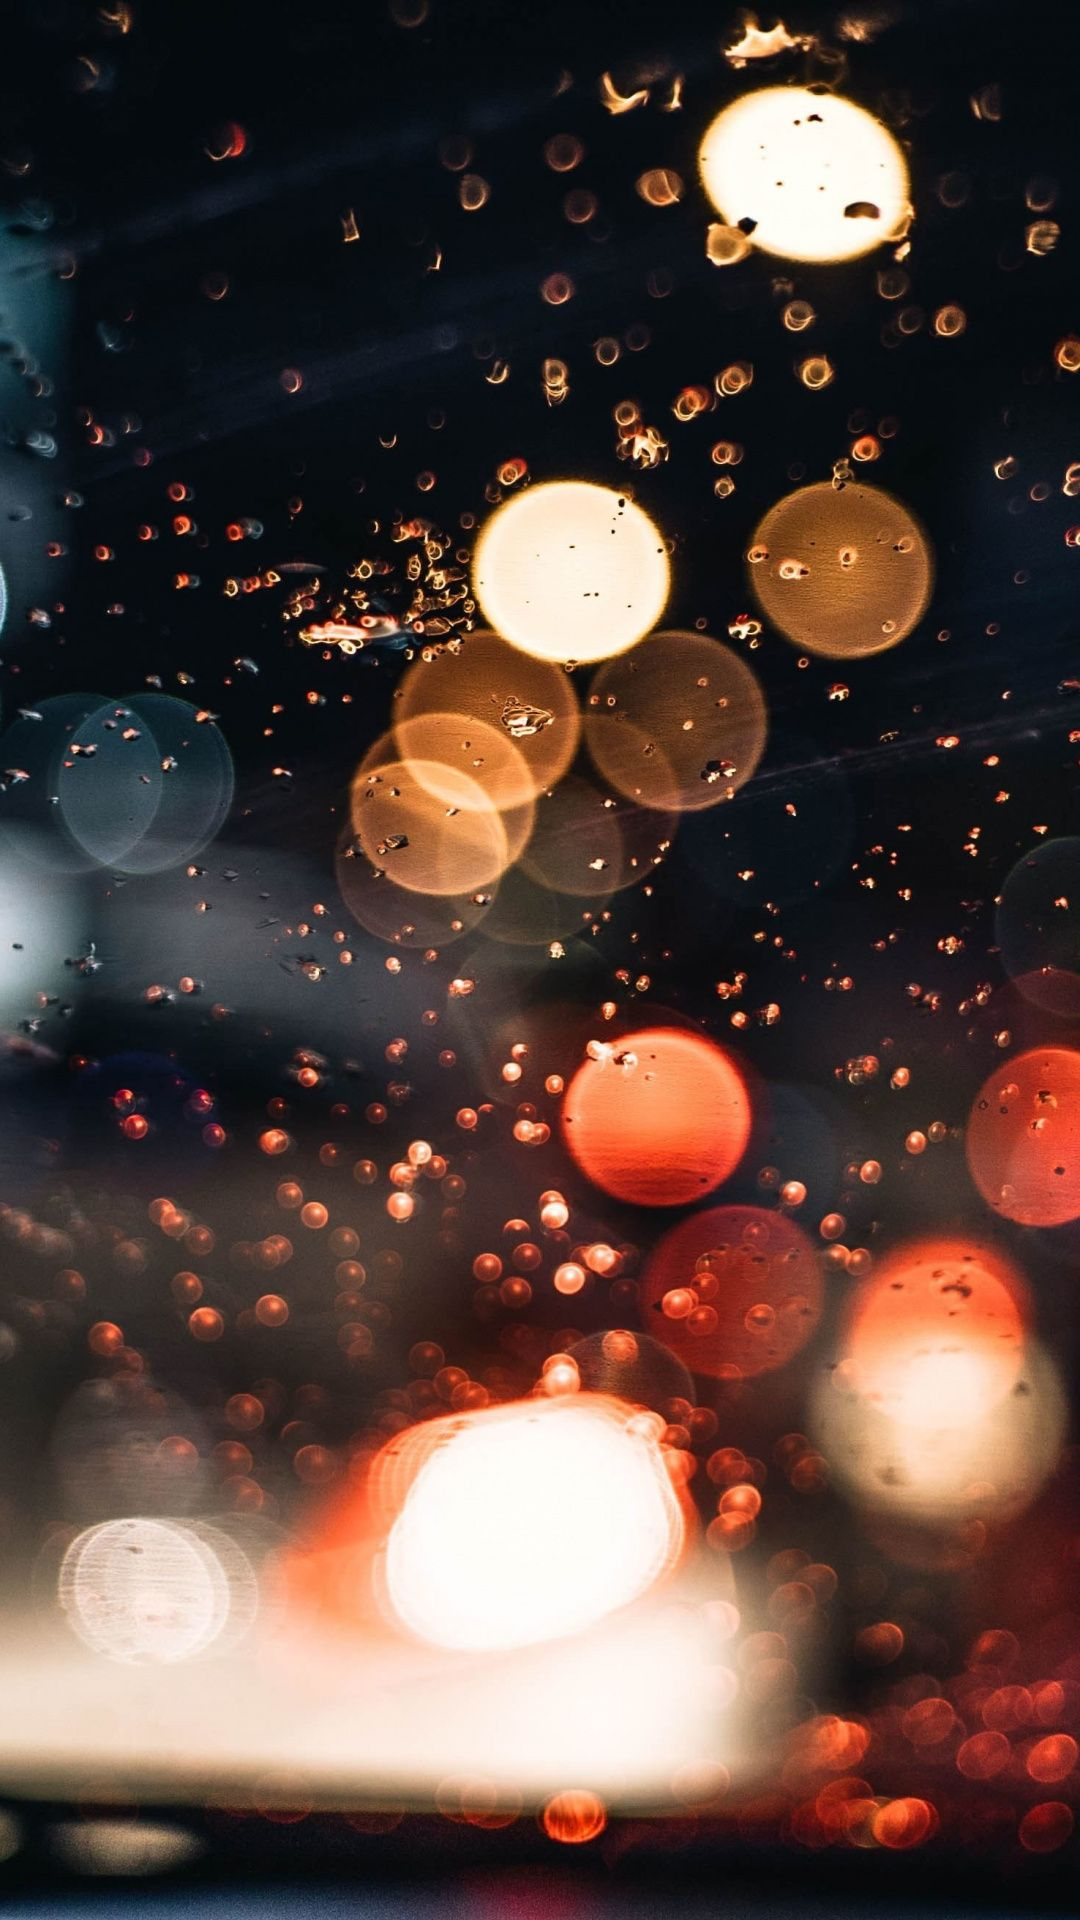 Lights, bokeh, dark, 1080x1920 wallpaper Iphone